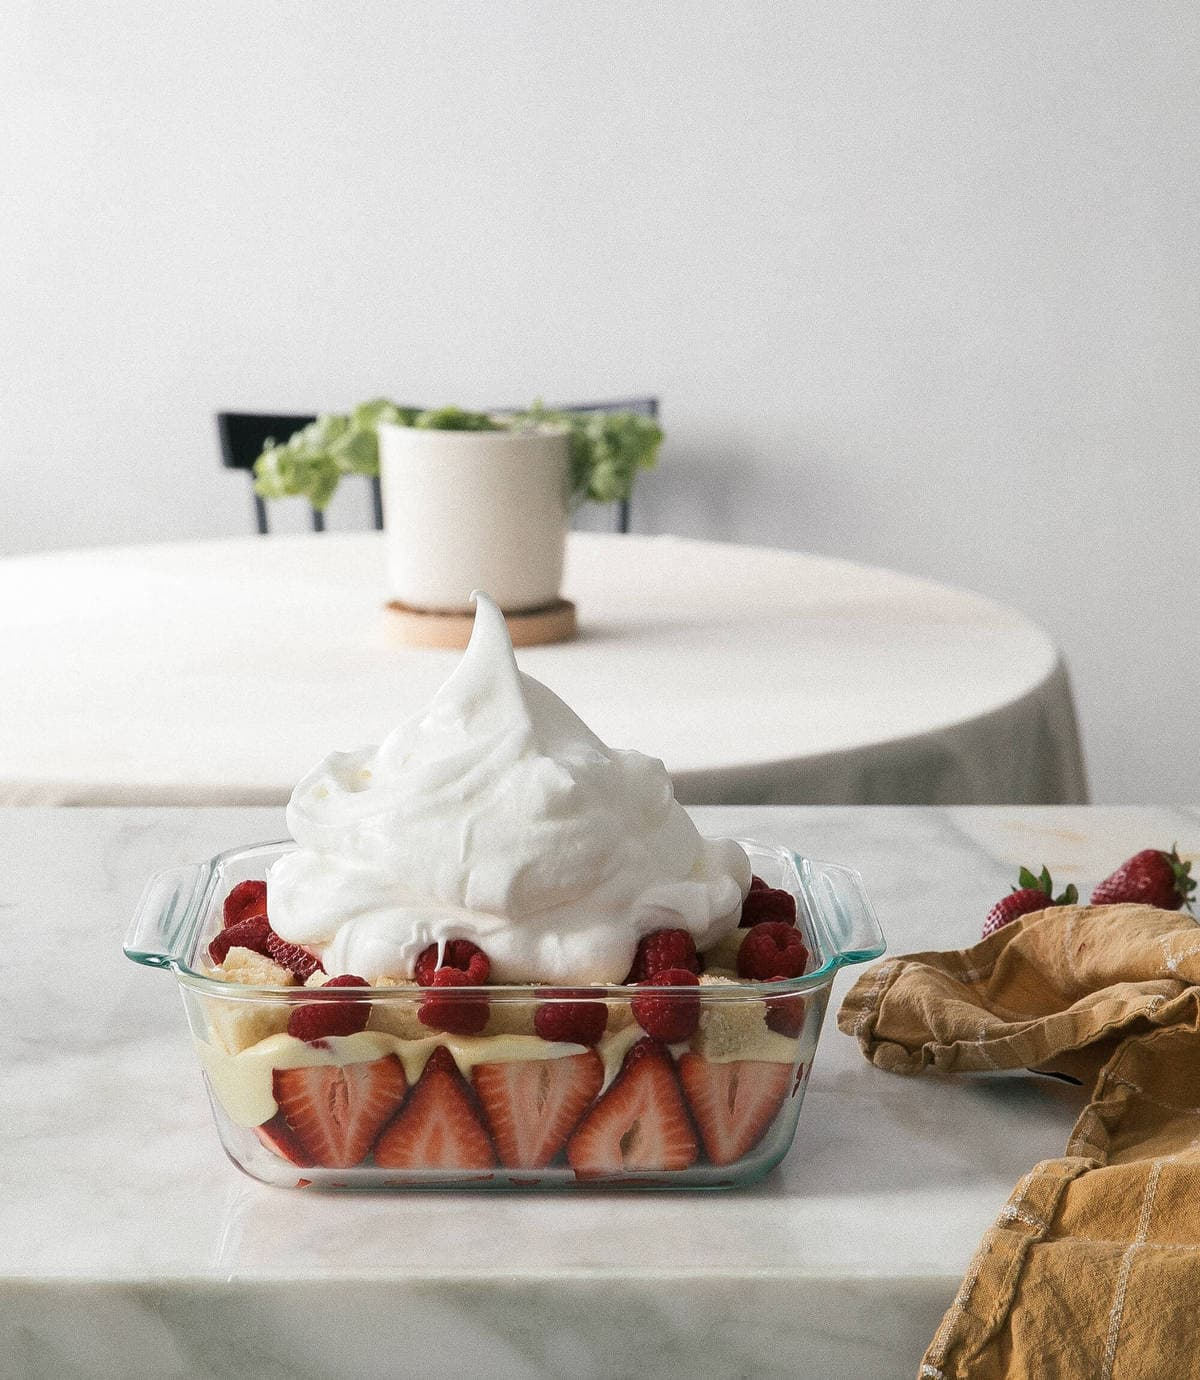 Lemon Berry Meringue Trifle